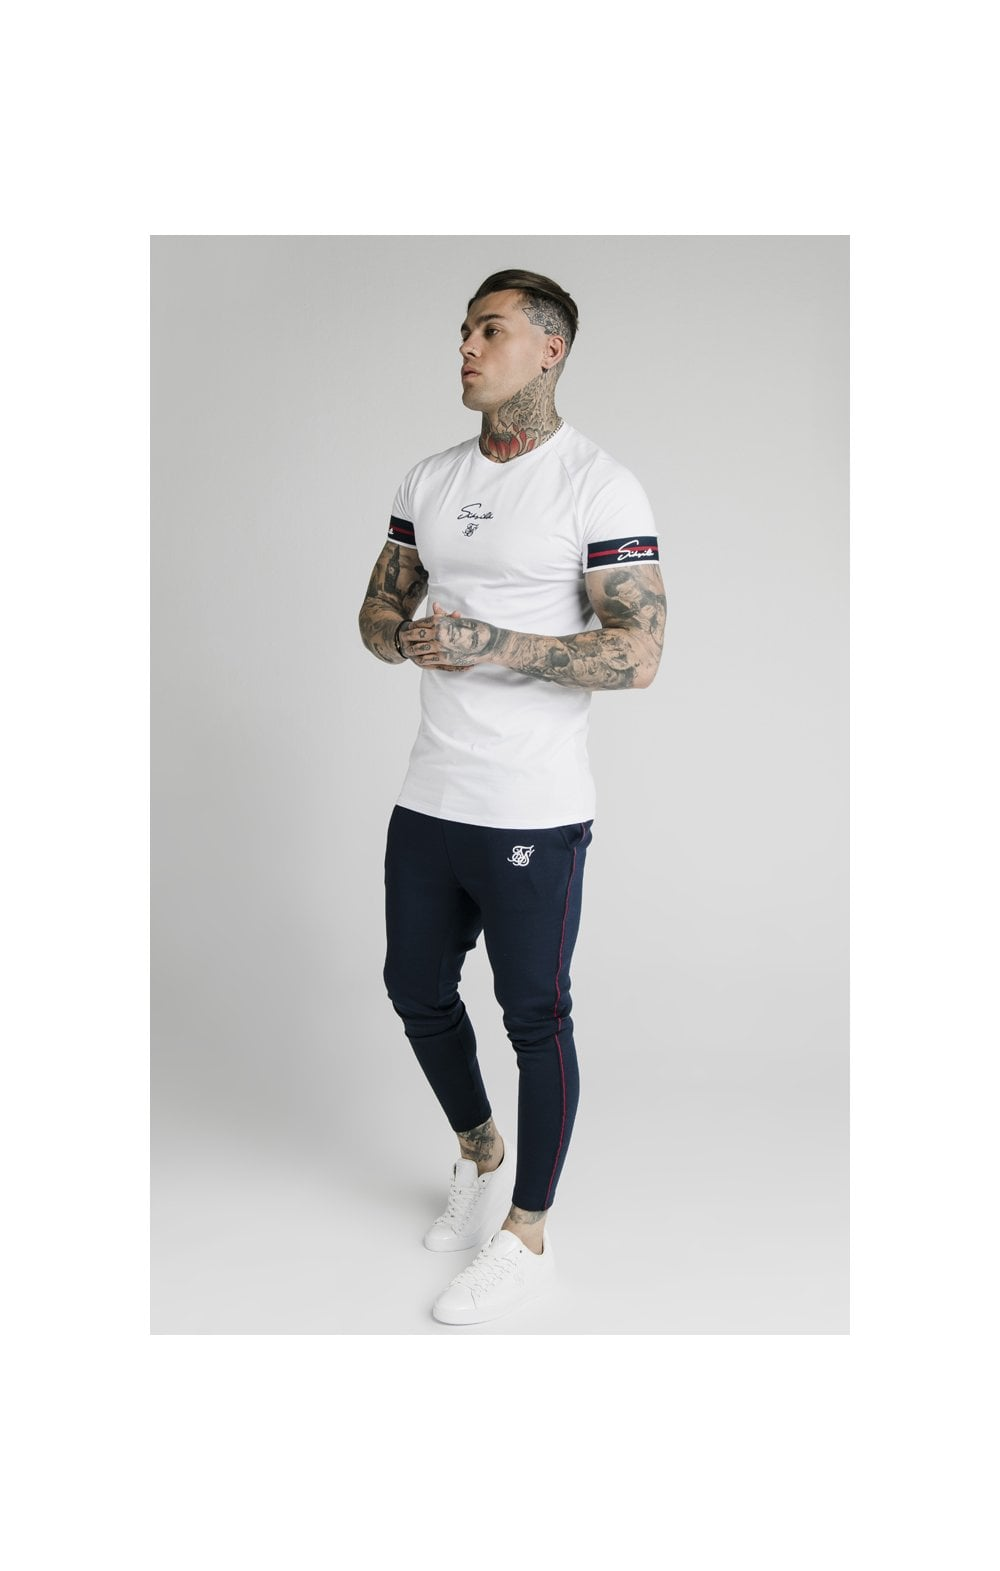 Load image into Gallery viewer, SikSilk Raglan Tech Tee Exposed Tape - White (2)